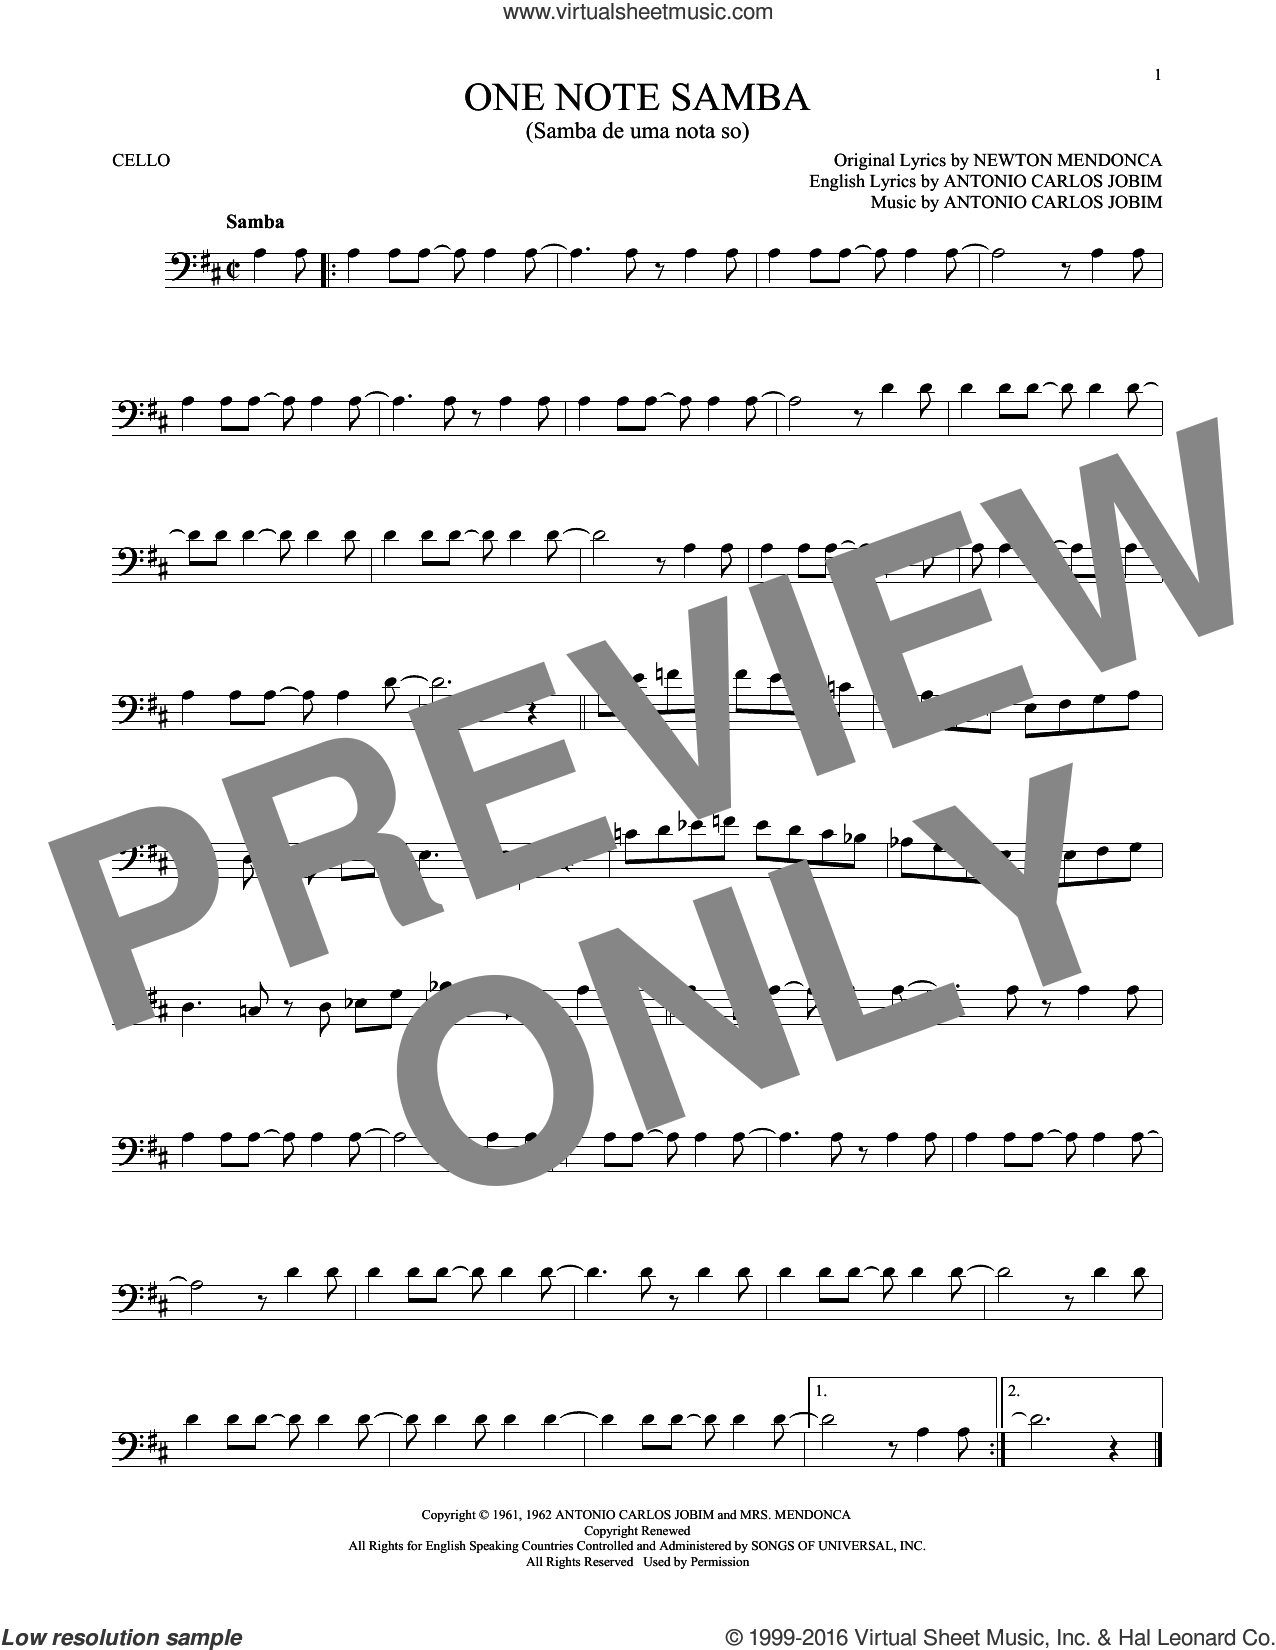 One Note Samba (Samba De Uma Nota So) sheet music for cello solo by Antonio Carlos Jobim. Score Image Preview.